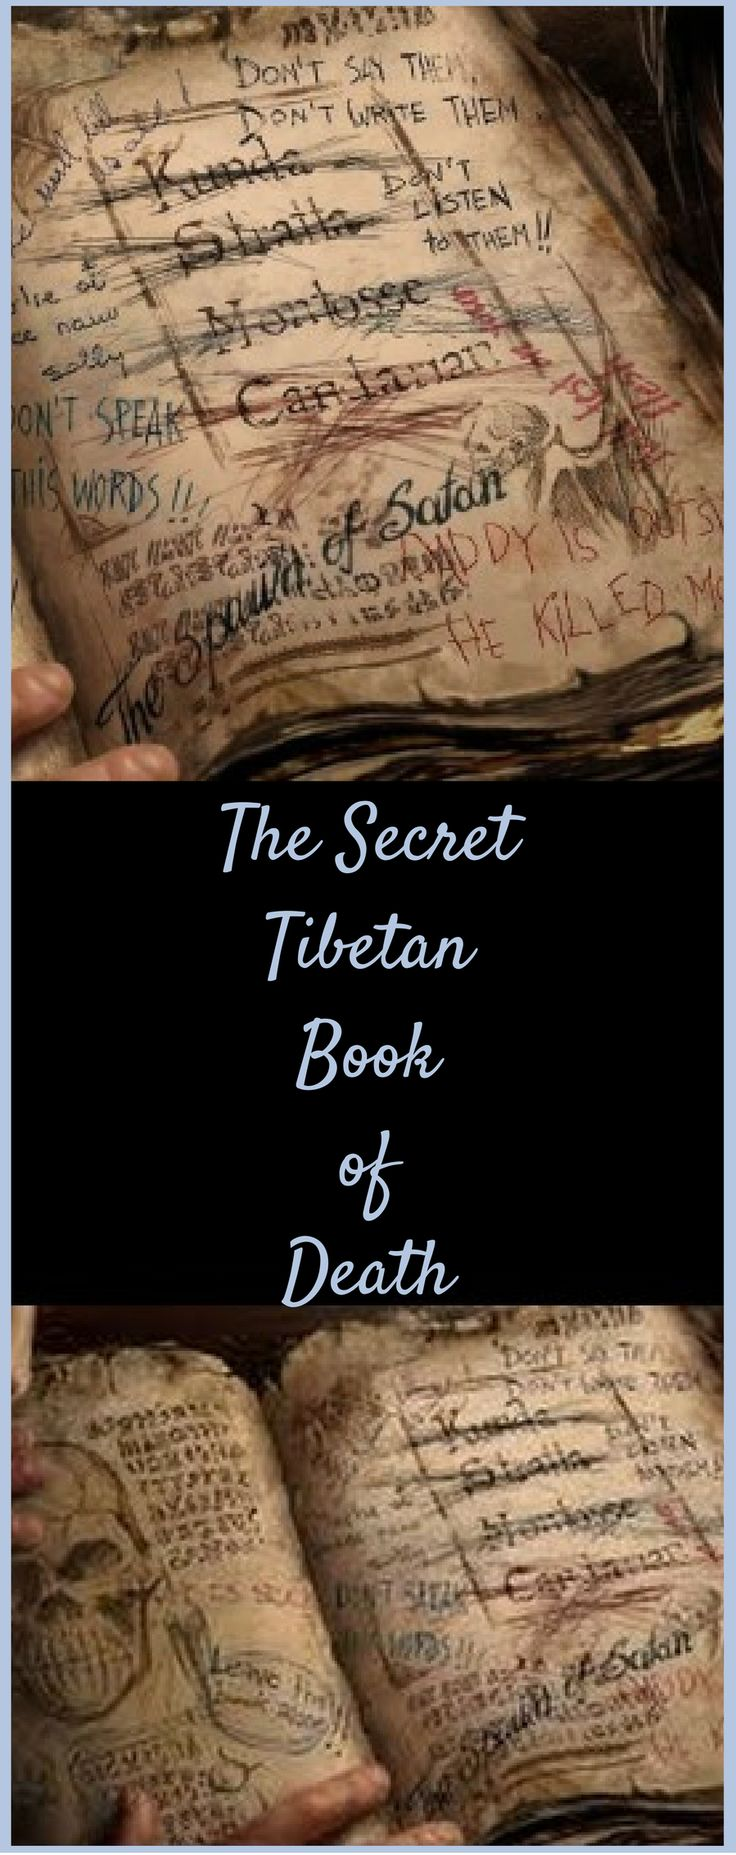 384 best prayer scrolls plus images on pinterest 14th dalai lama the tibetan books of the dead are a diverse collection of buddhist scriptures that yield valuable m4hsunfo